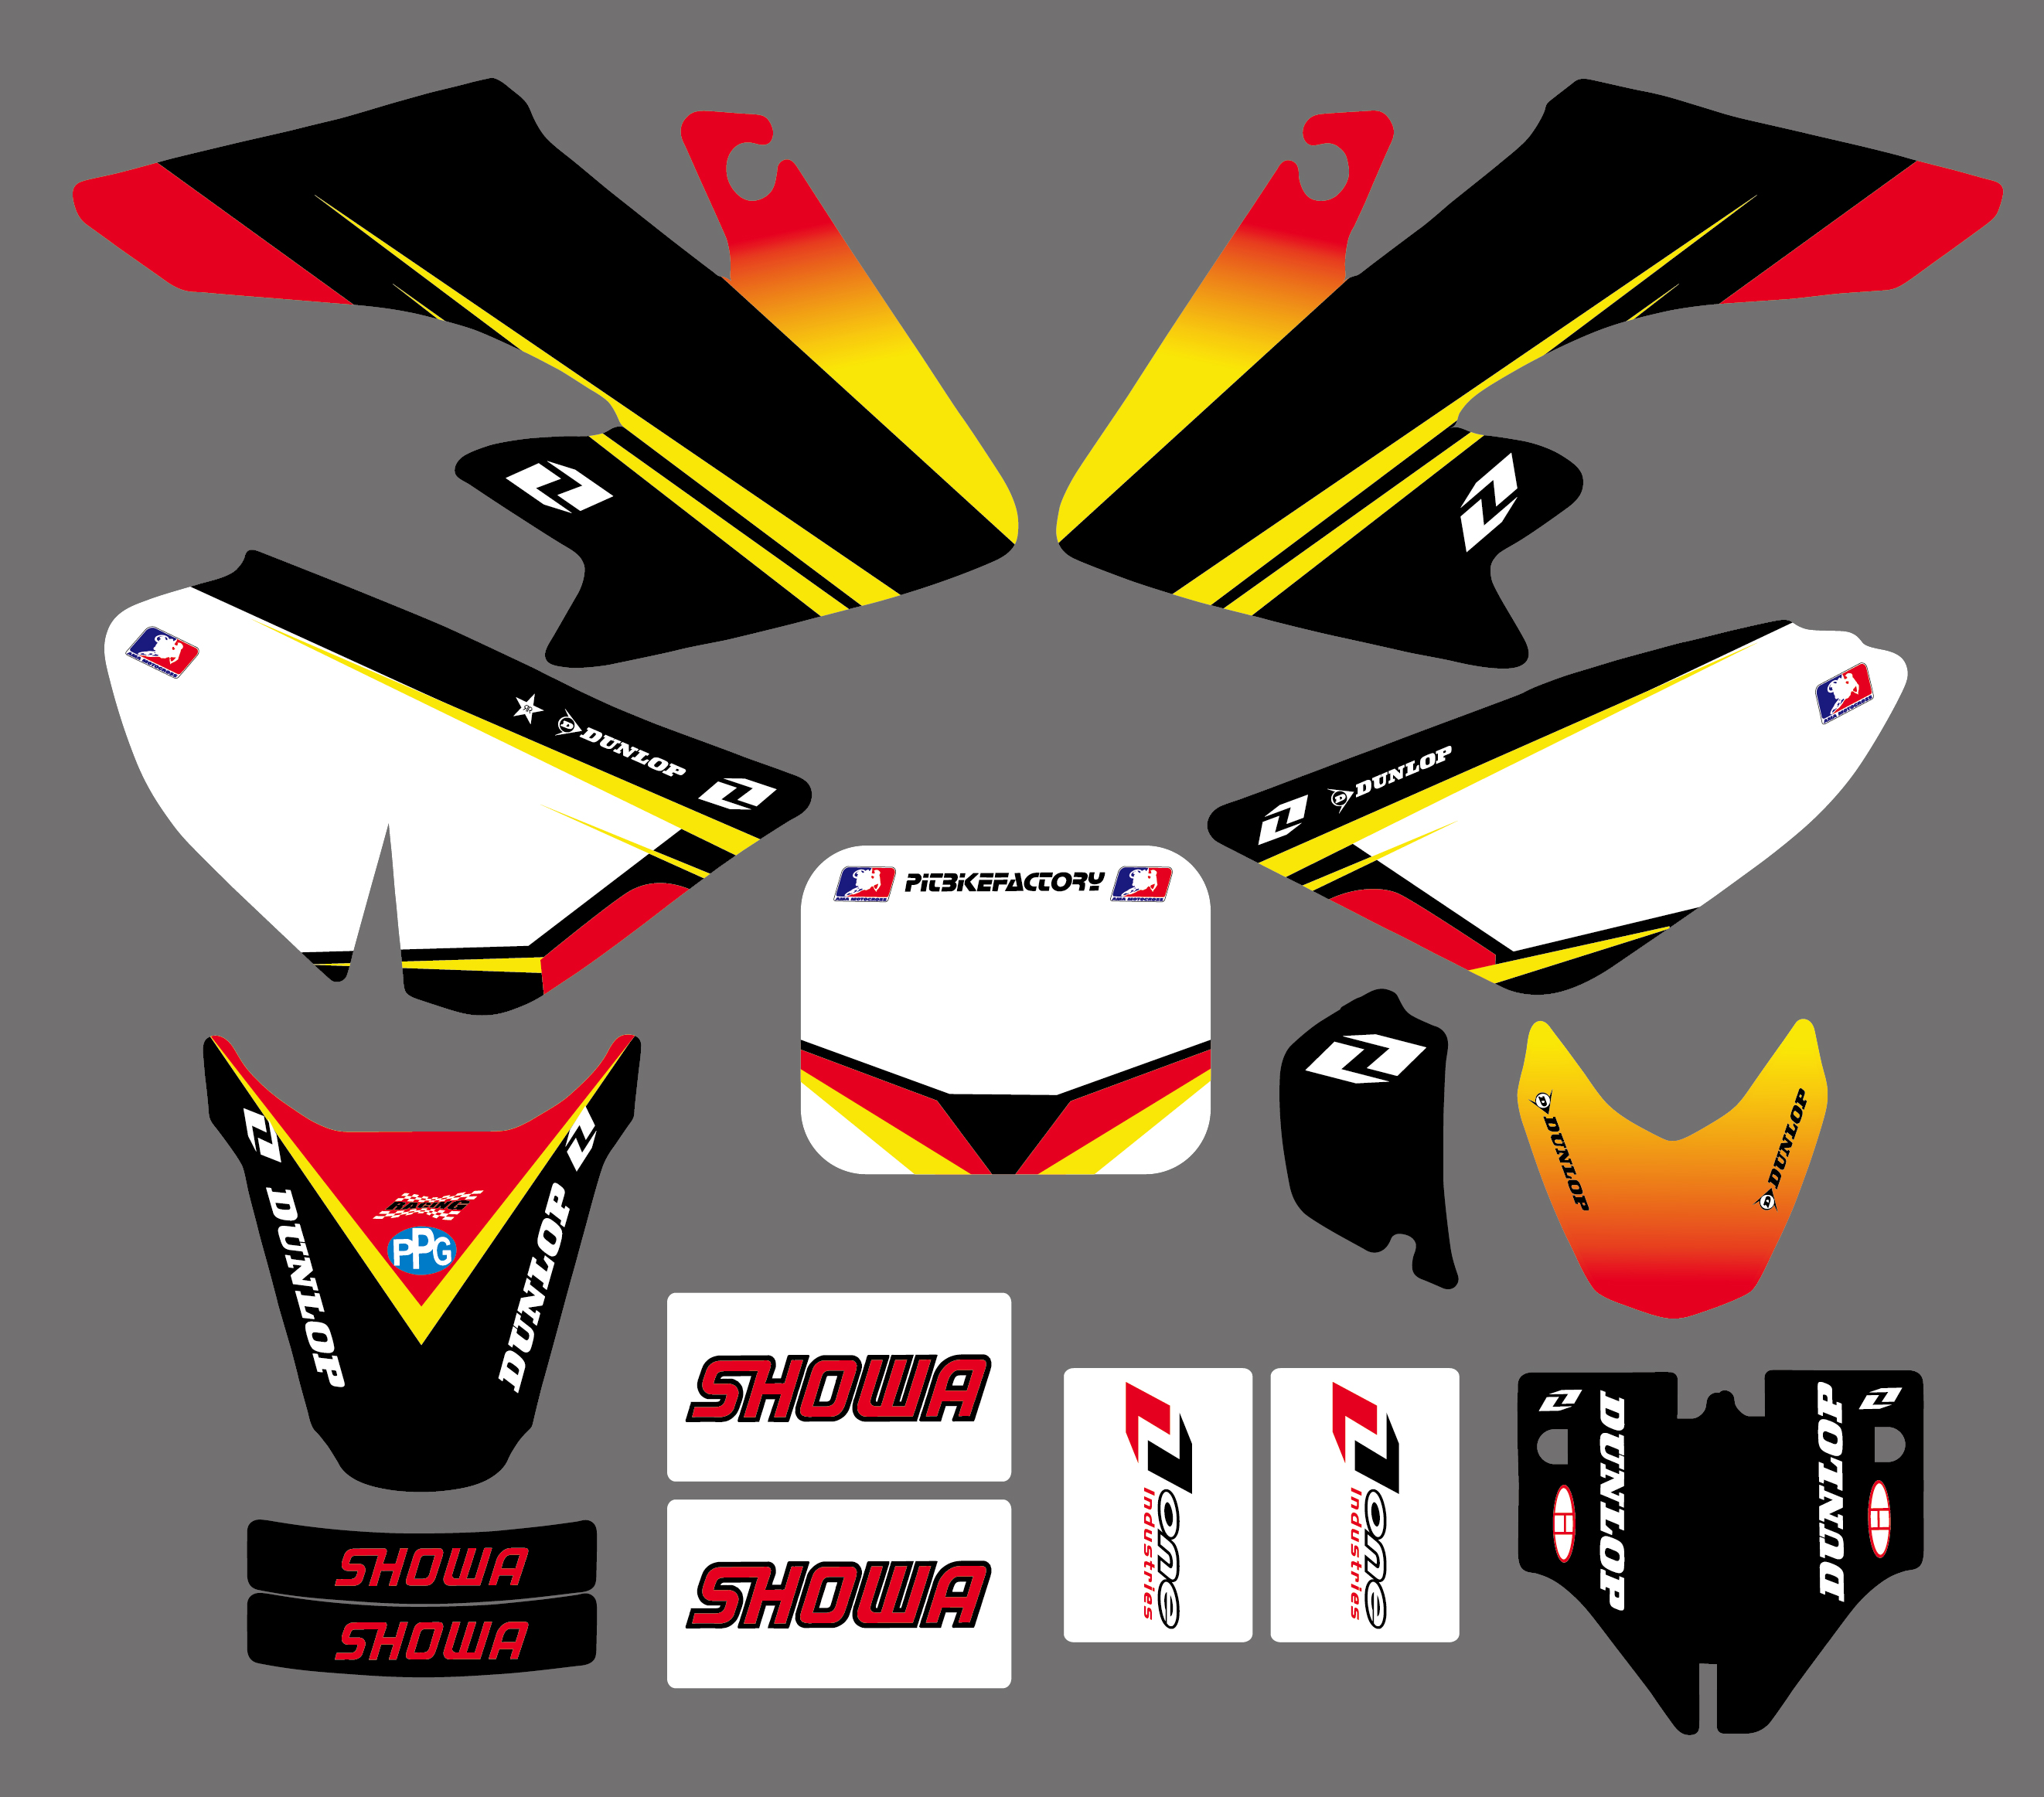 Motorbike TEAM GRAPHICS&BACKGROUNDS DECAL STICKERS Kits For Honda CRF50 CRF50F STYLE Pit Dirt bike(Yellow/White) Pegatina Moto image